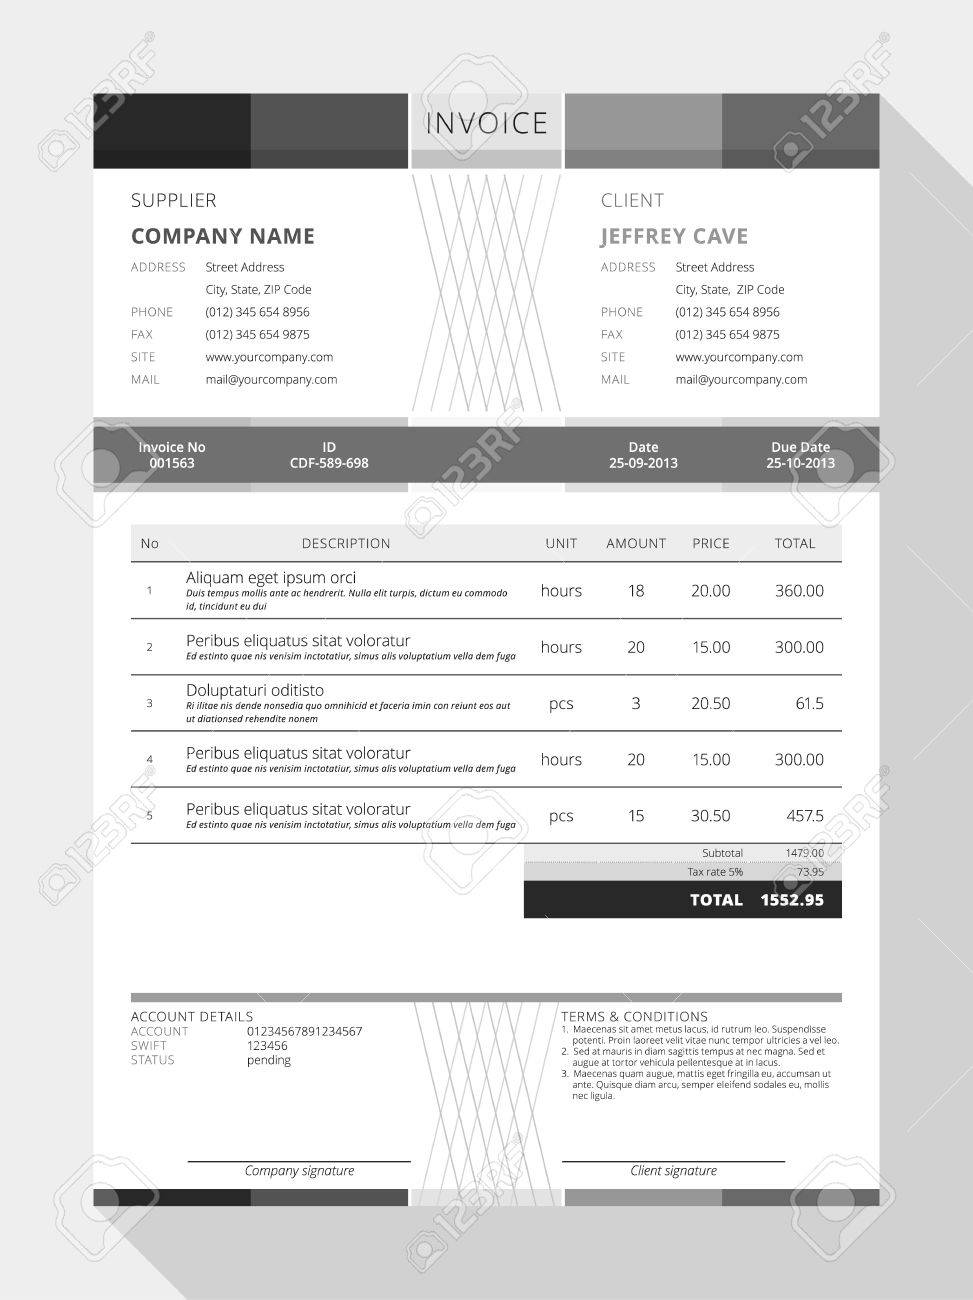 Angkajituus  Fascinating Design An Invoice  Professional Graphic Design Invoice  With Inspiring Vector Customizable Invoice Form Template Design Vector   Design An Invoice With Beauteous Free Invoice Template Downloads Also Invoice Factoring Fees In Addition Timesheet And Invoice Software And Vtiger Invoice As Well As Invoice Not Paid What Can I Do Additionally Easy Invoice Finance From Happytomco With Angkajituus  Inspiring Design An Invoice  Professional Graphic Design Invoice  With Beauteous Vector Customizable Invoice Form Template Design Vector   Design An Invoice And Fascinating Free Invoice Template Downloads Also Invoice Factoring Fees In Addition Timesheet And Invoice Software From Happytomco